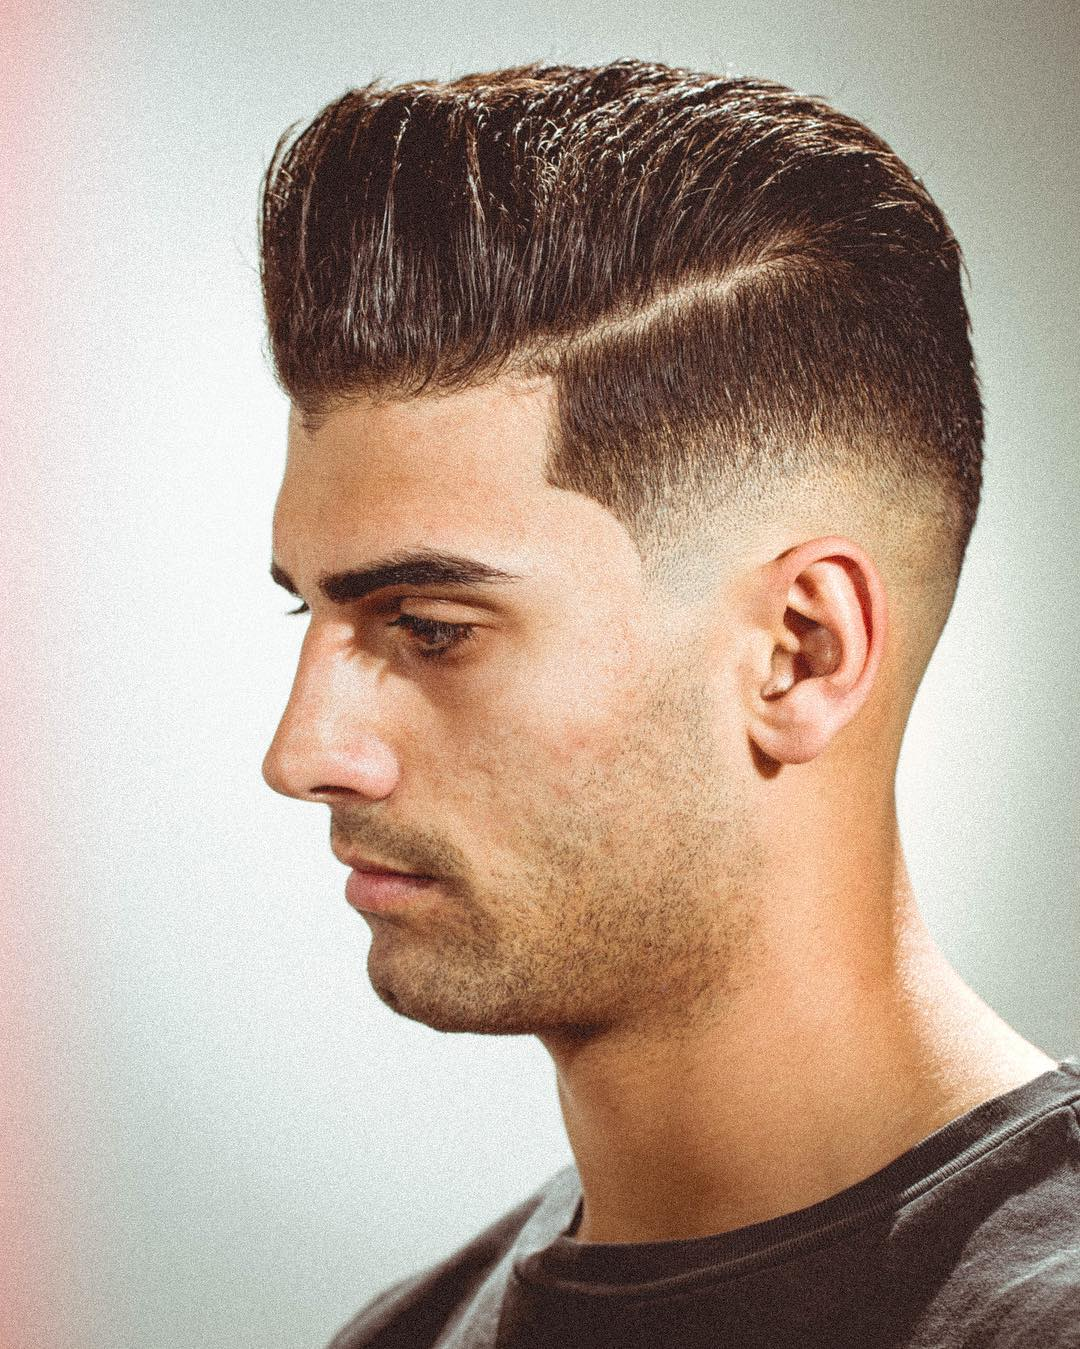 Side part pompadour hairstyle for guys